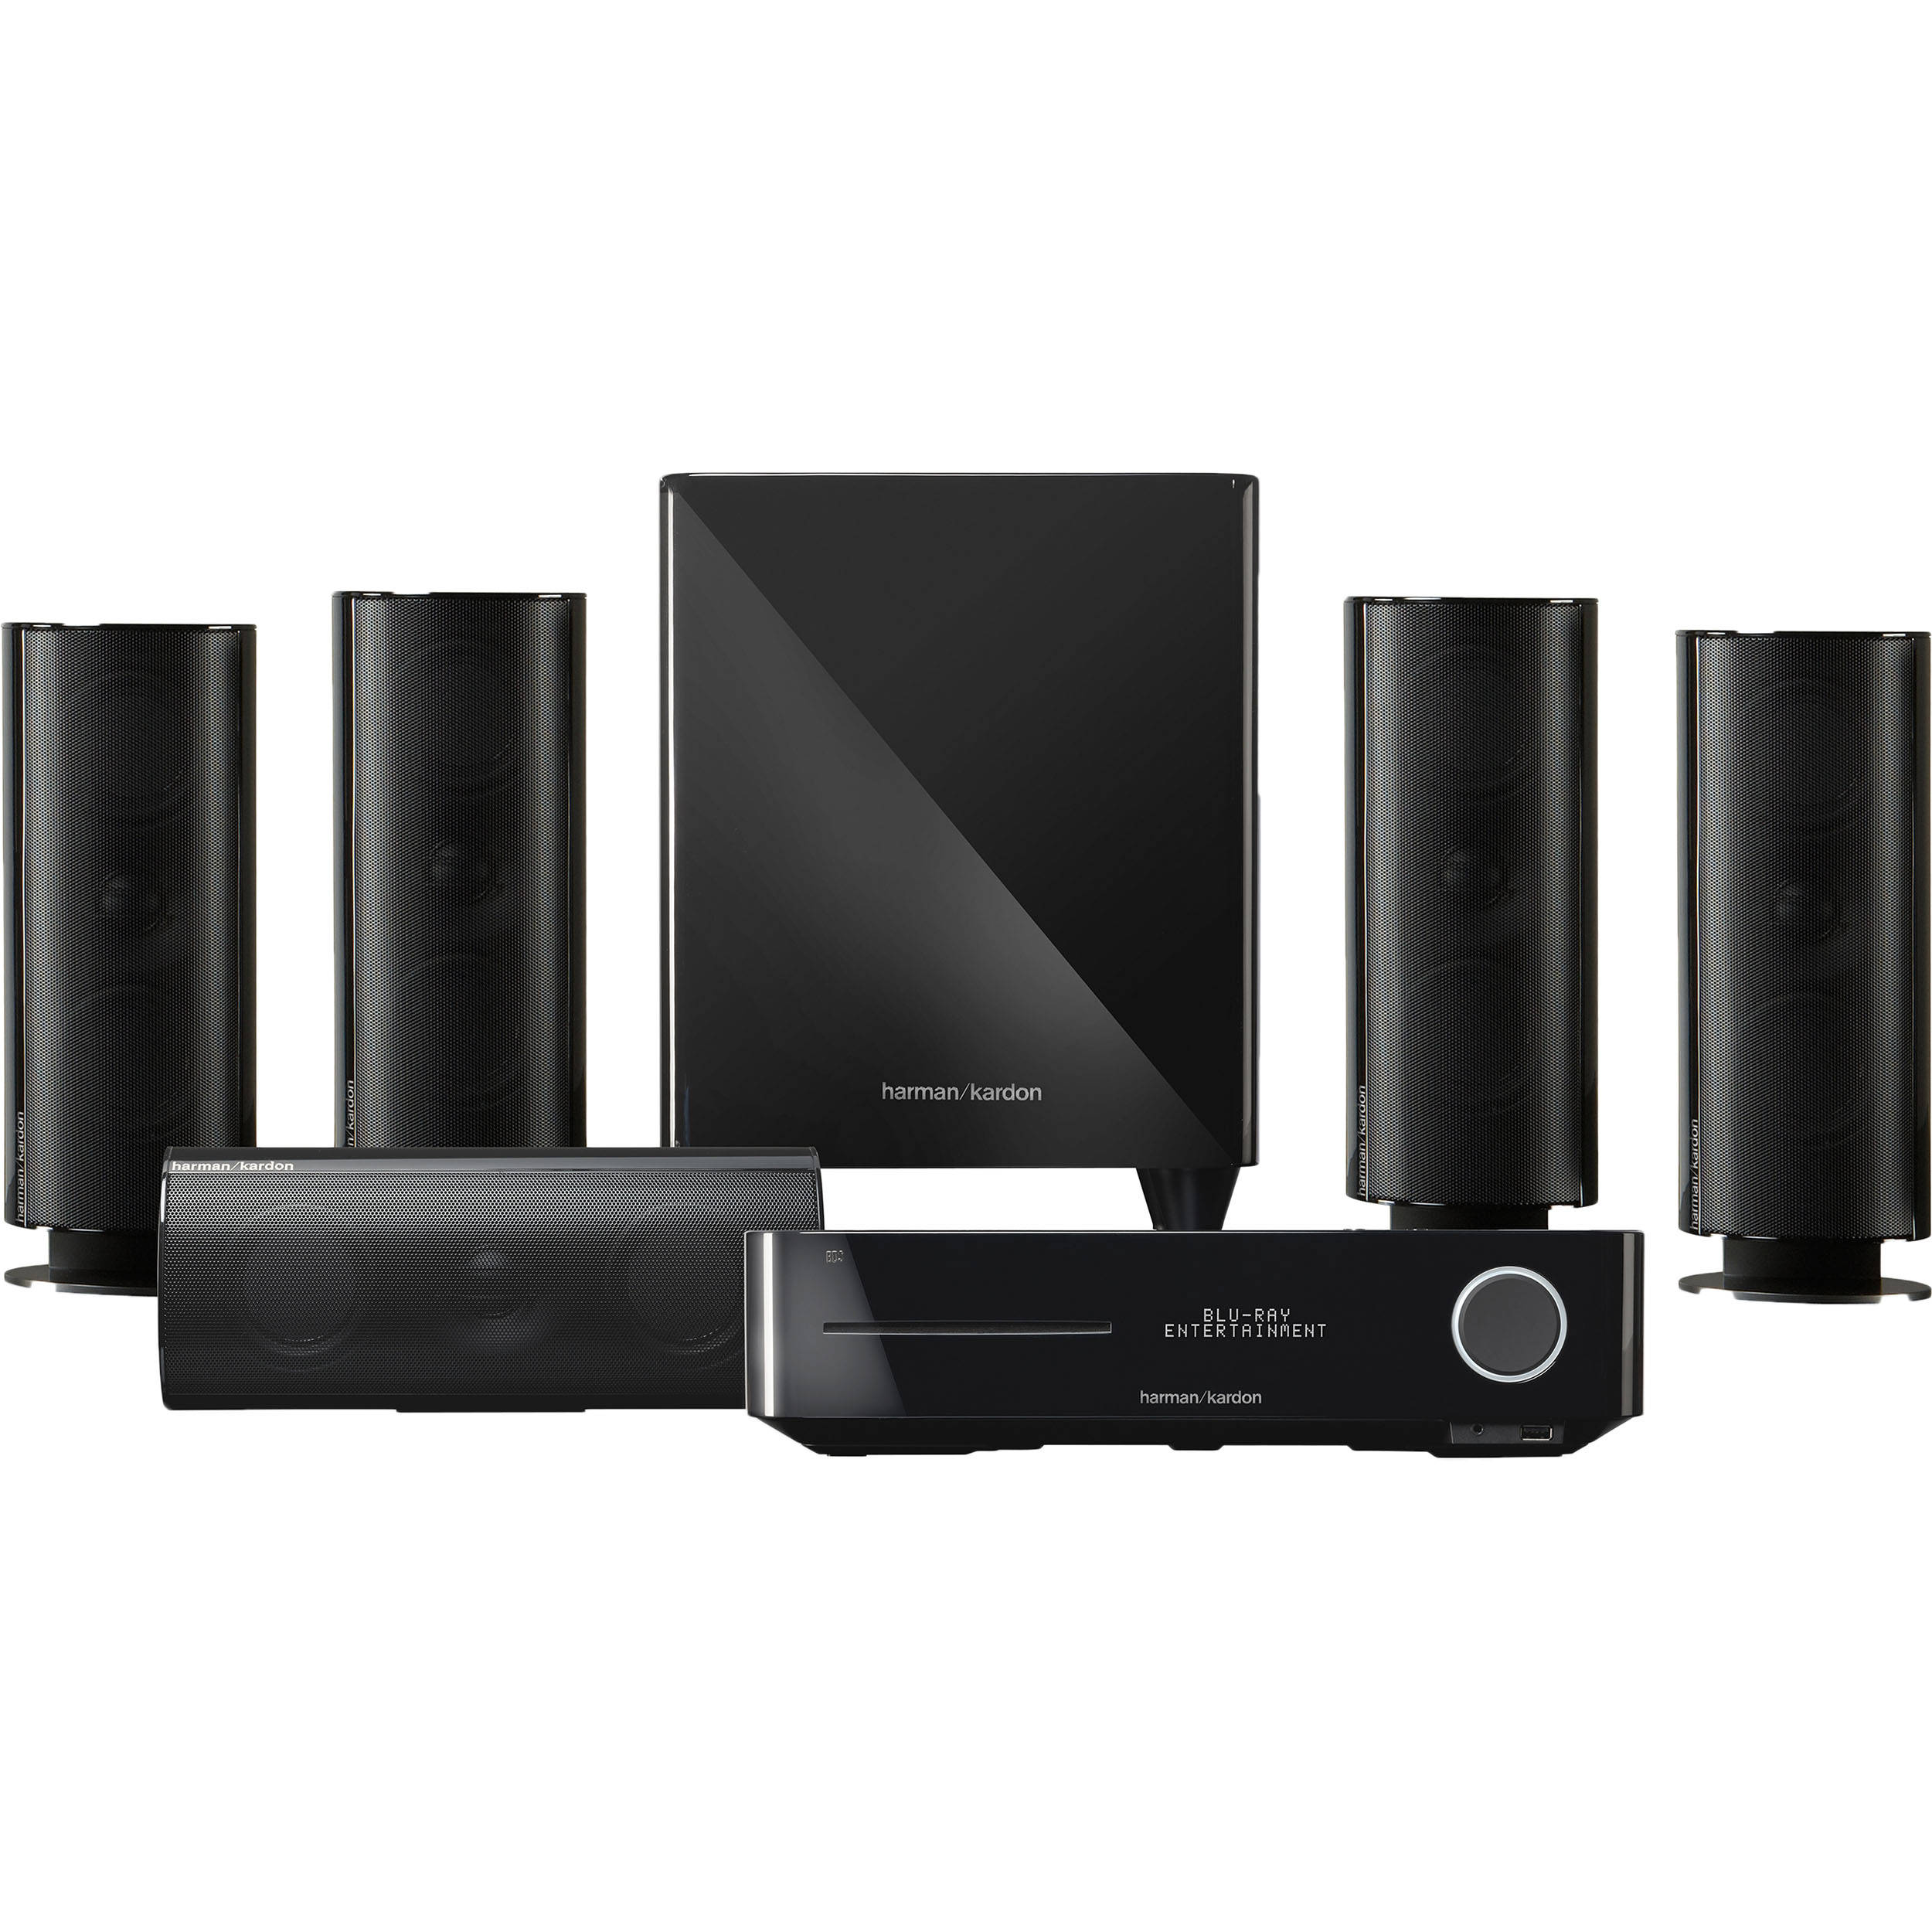 harman kardon bds 800 5 1 channel home entertainment bds. Black Bedroom Furniture Sets. Home Design Ideas